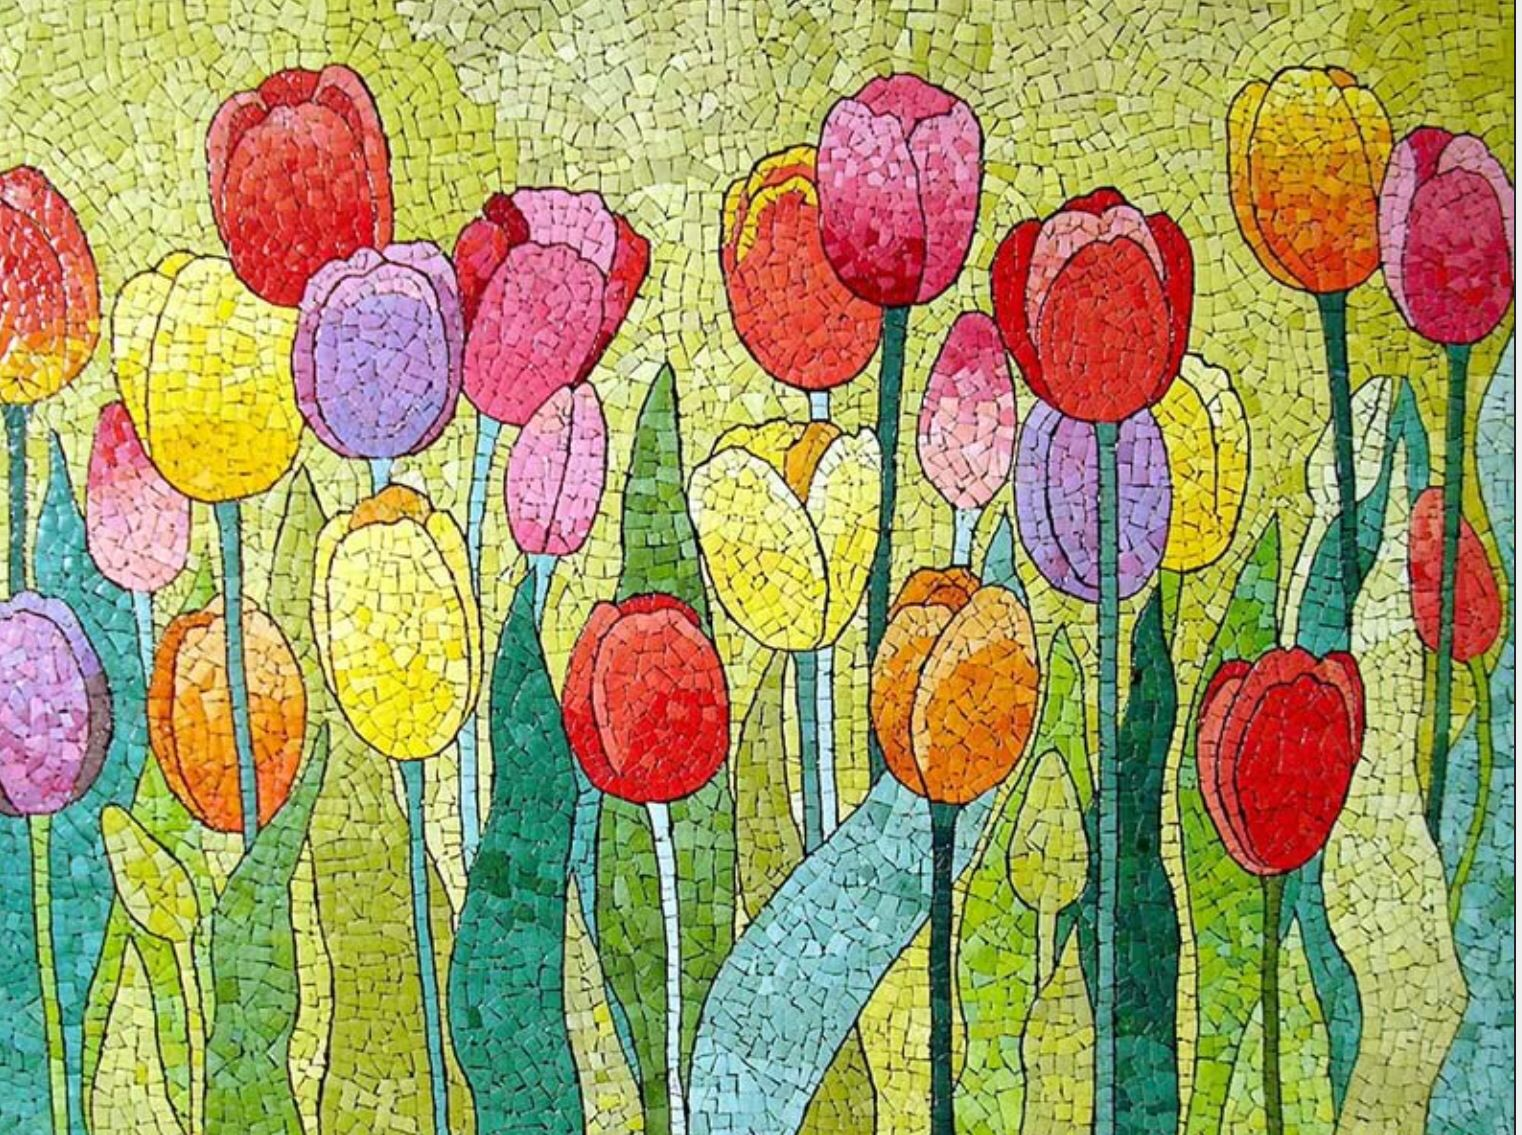 tulipánok | Mosaics 8 | Pinterest | Mosaics, Mosaic flowers and ...